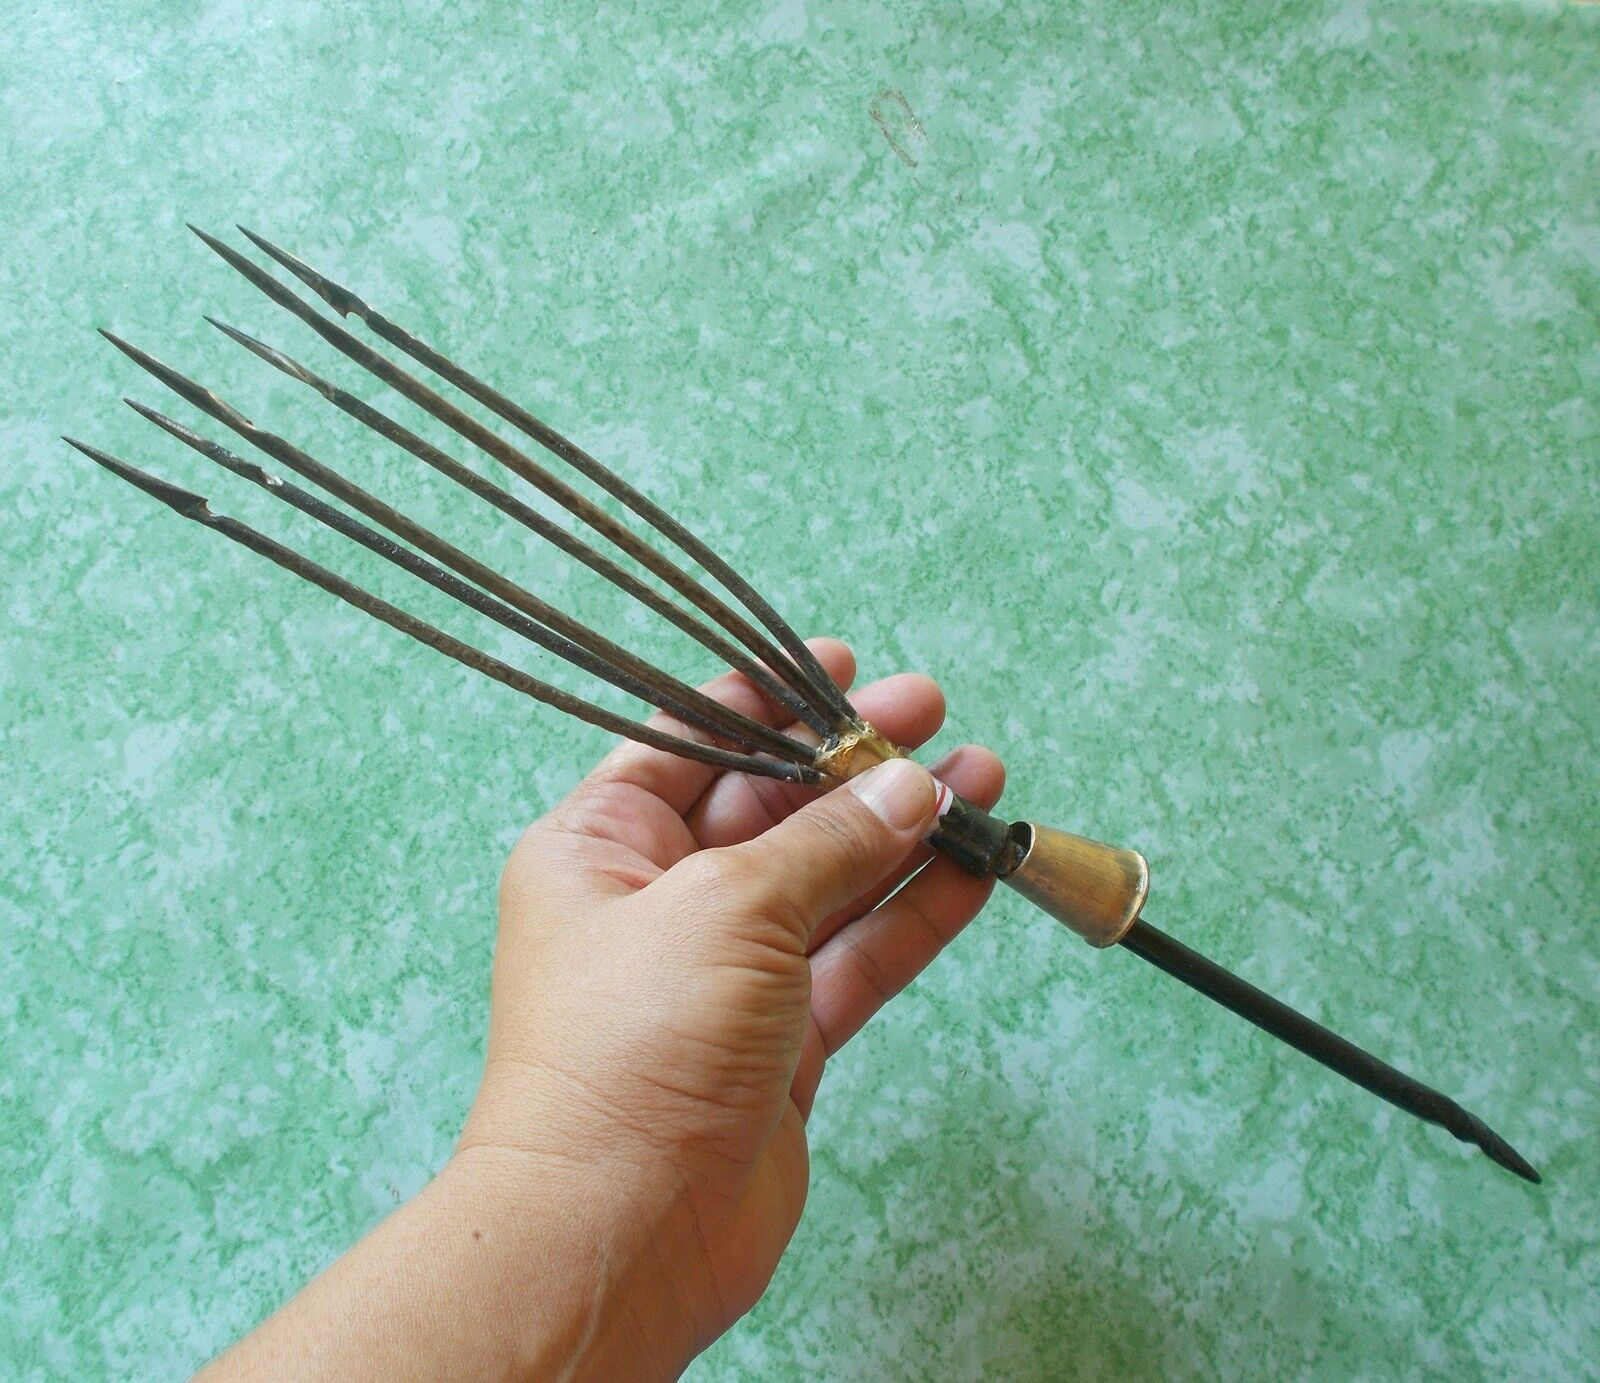 Harpoon Gaff Spear 6 Prongs 6.5  Barbed Thai  Primitive Fishing Iron Steel Frog  online outlet sale